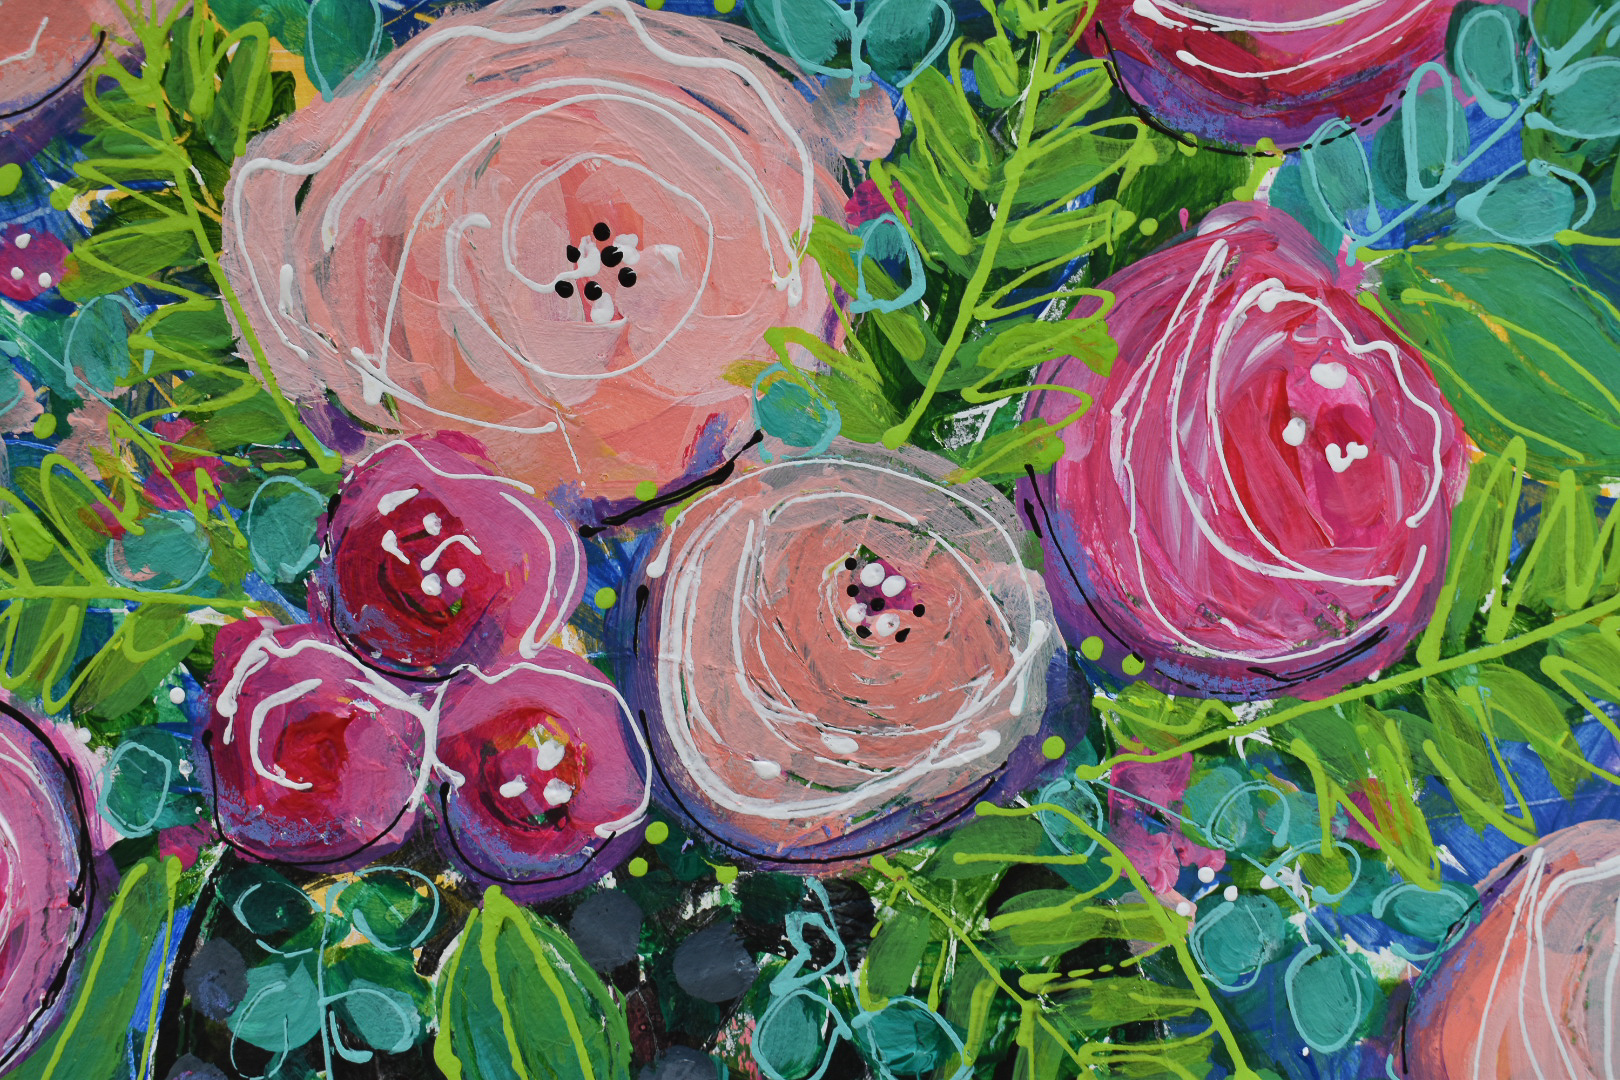 bohopainting_colorfulflowers_daisyfaithart_5.jpg